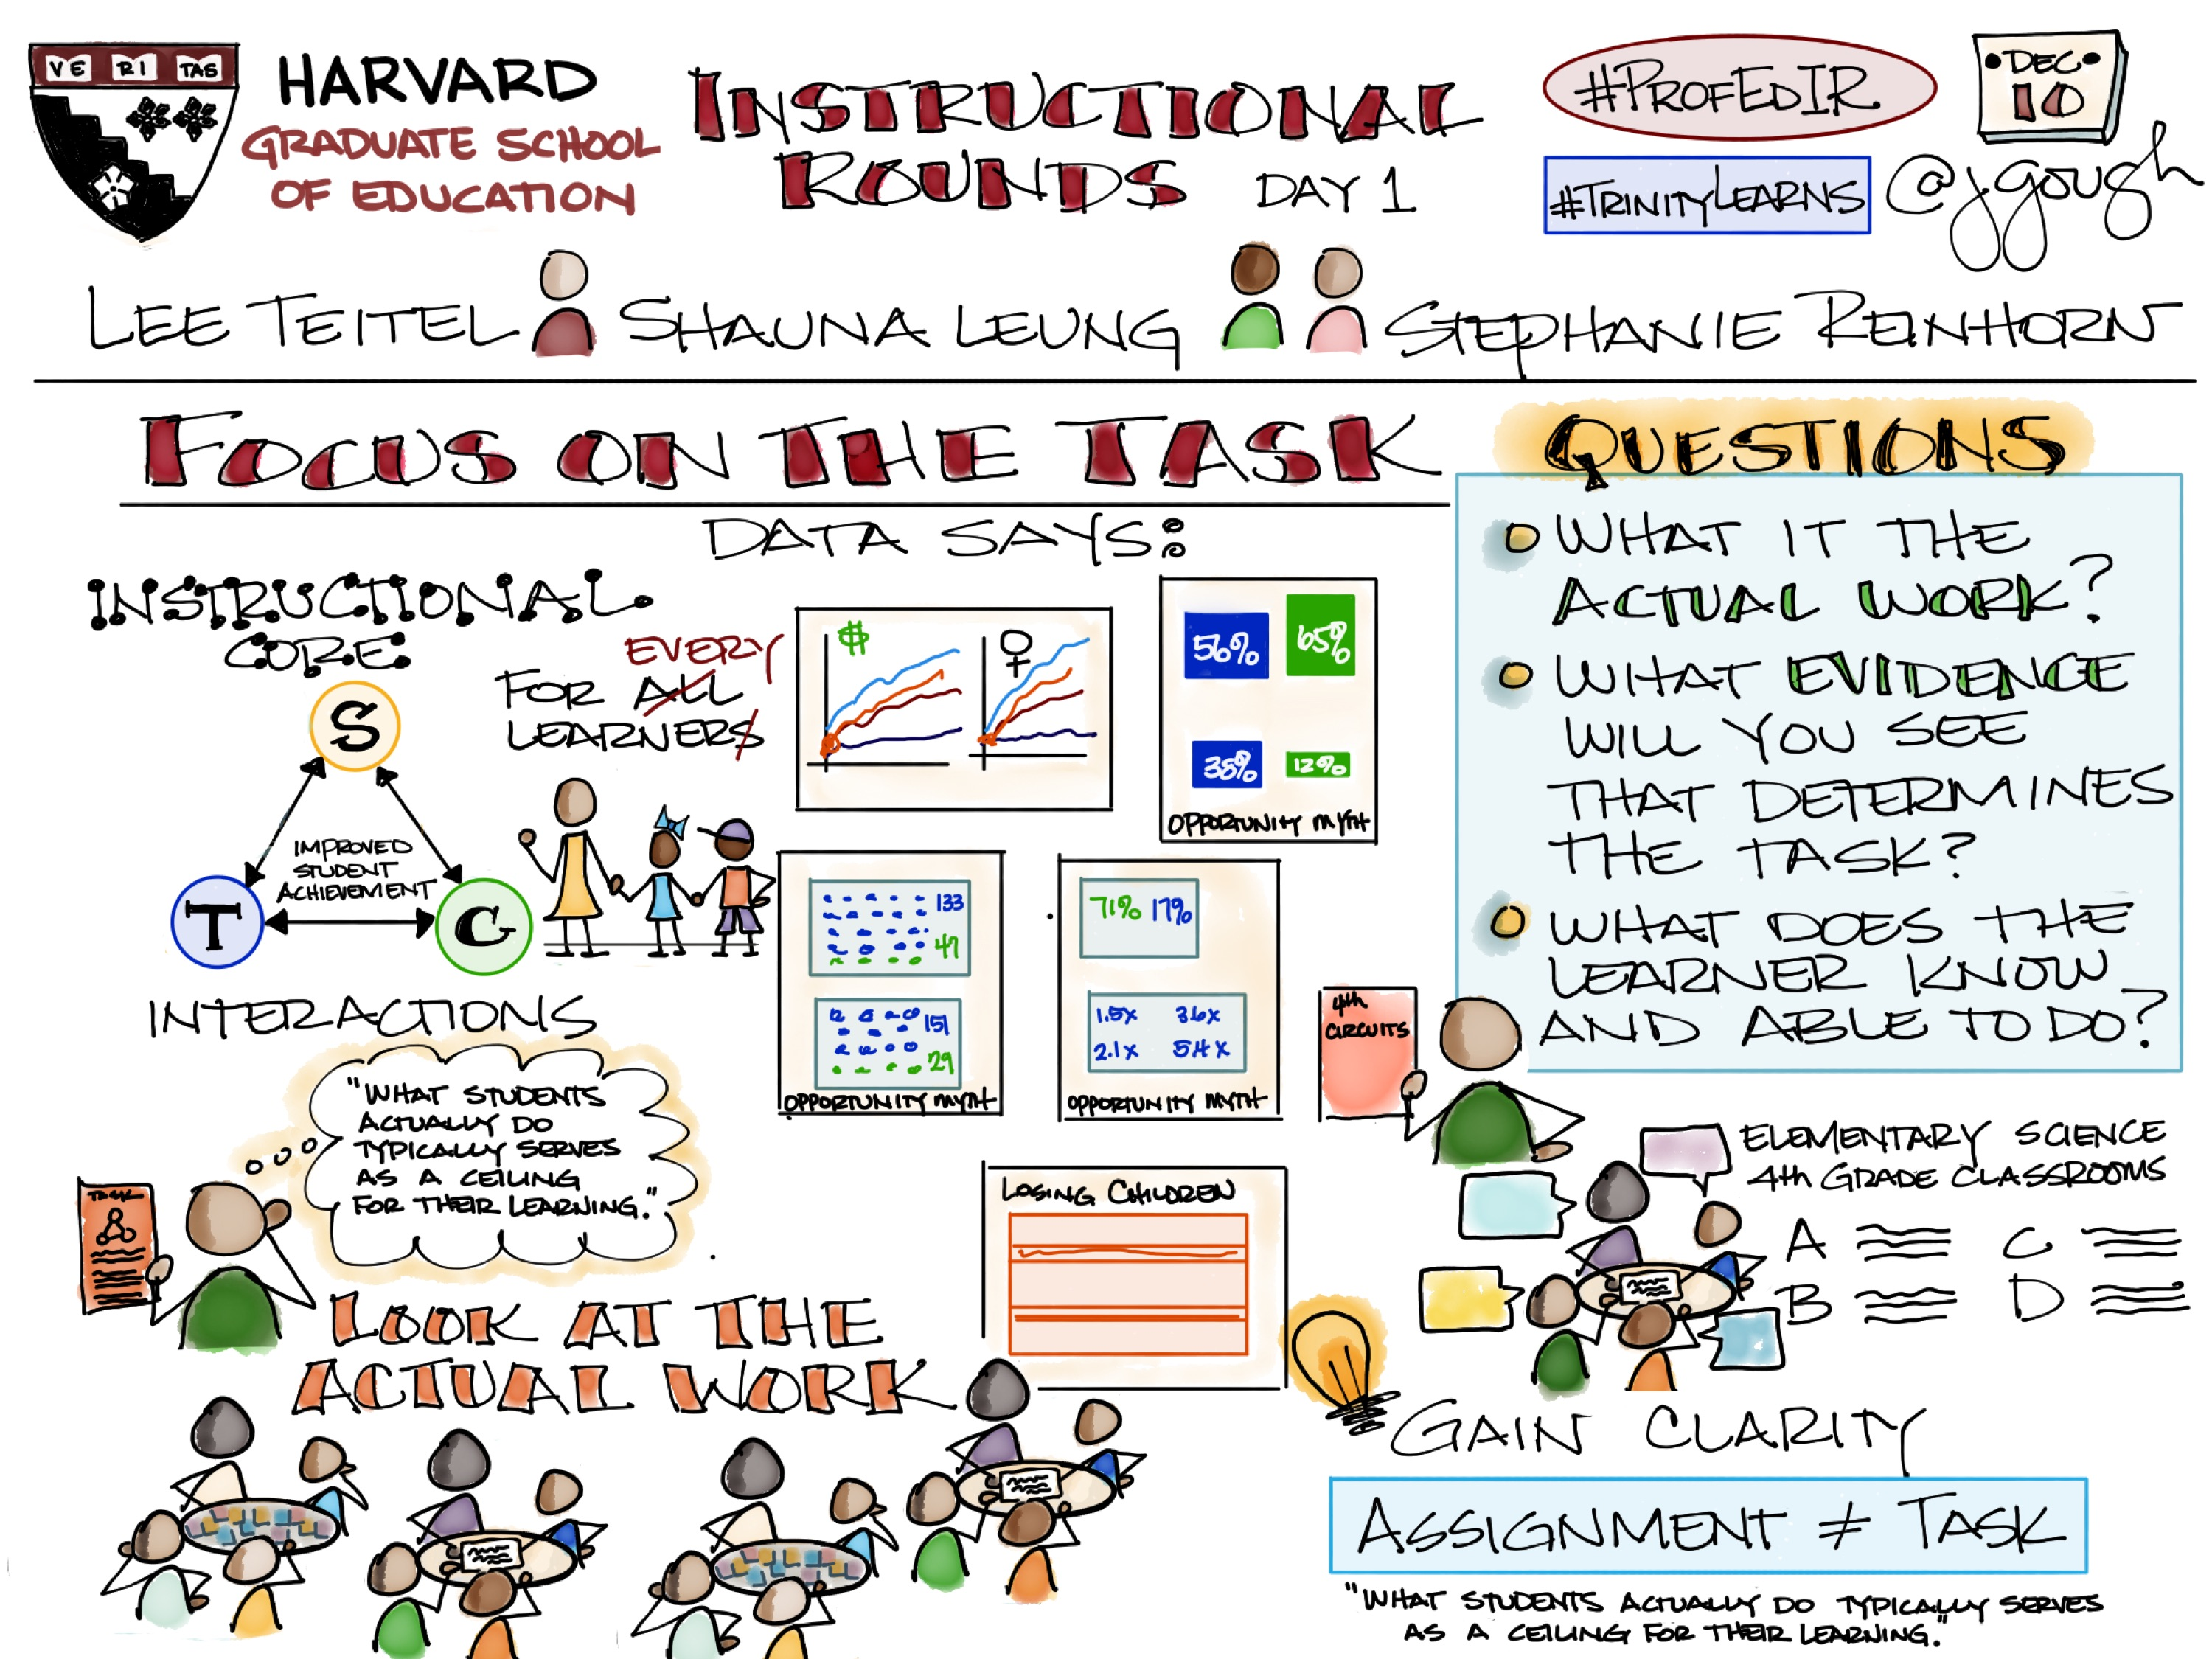 Sharing my #Sketchnotes from Day 1 #ProfEdIR @HGSE Focus on the Task #TrinityLearns